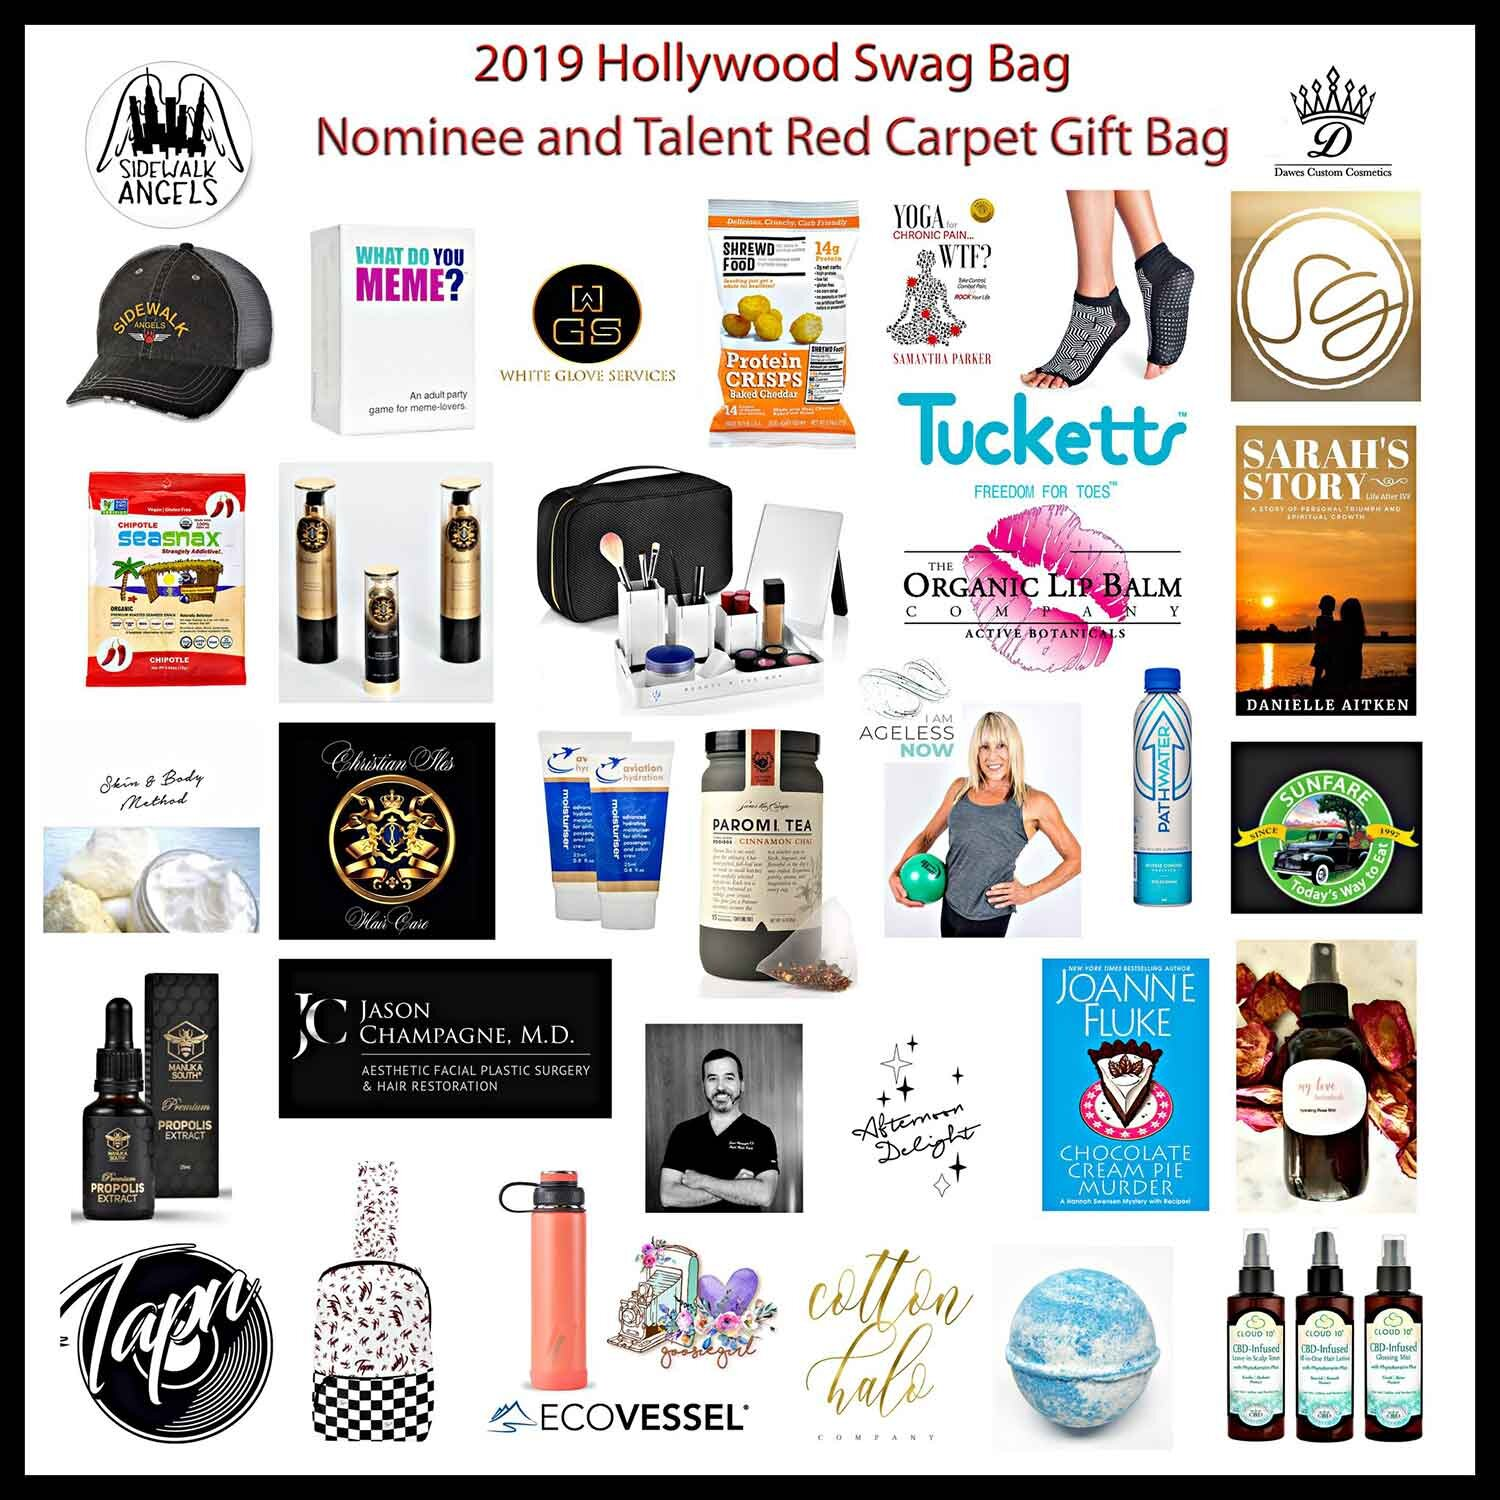 Emmys 2019 awards gift bag contents